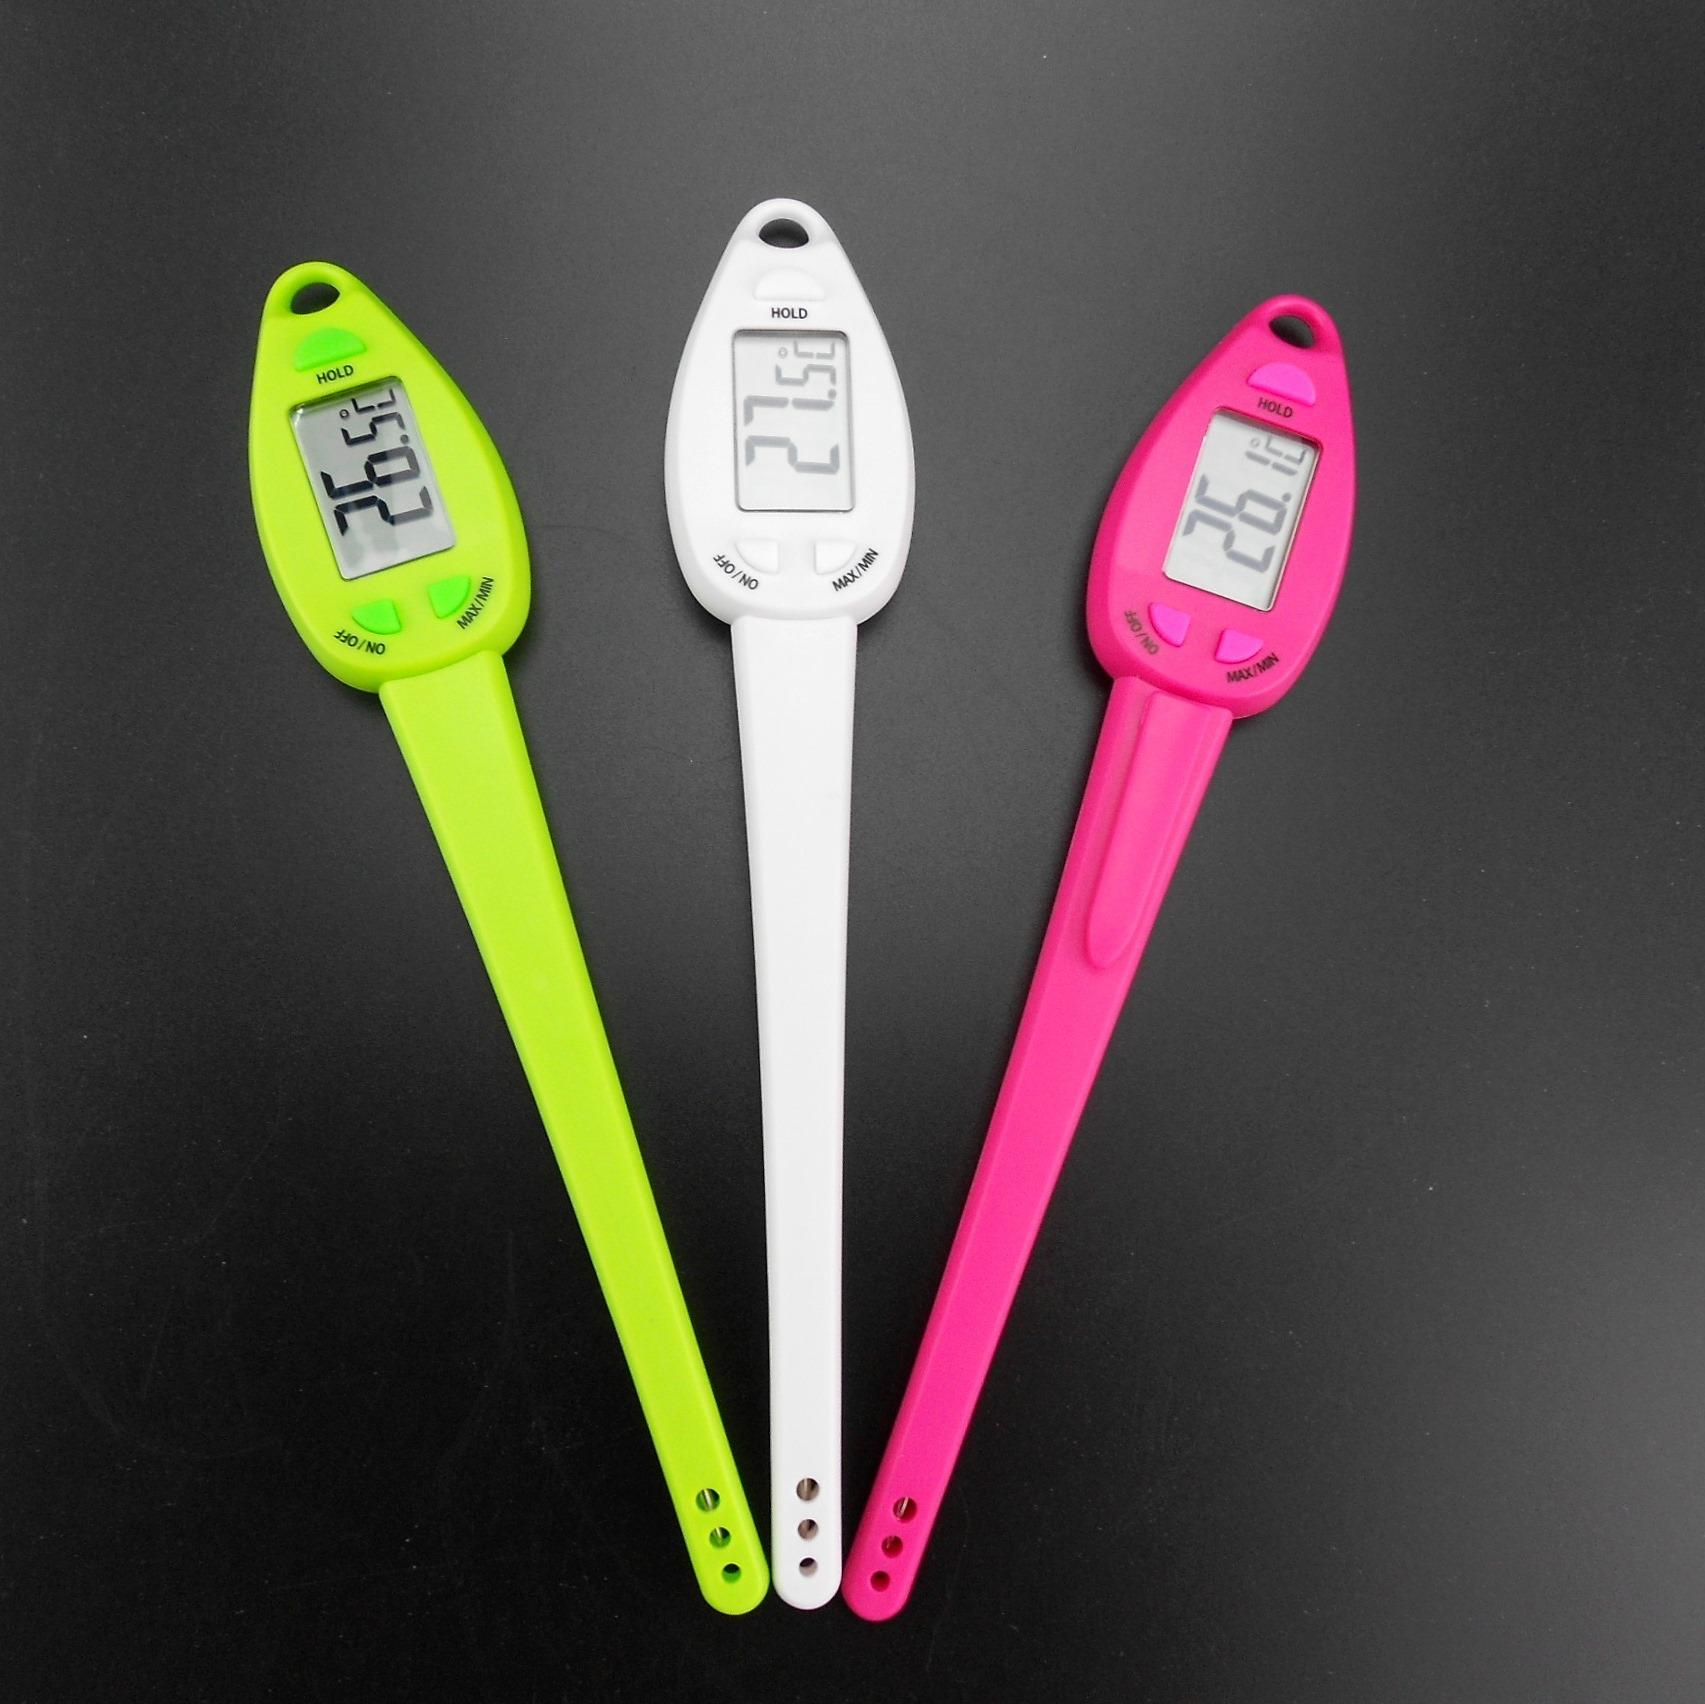 FT04 Digital Food meat thermometer 1